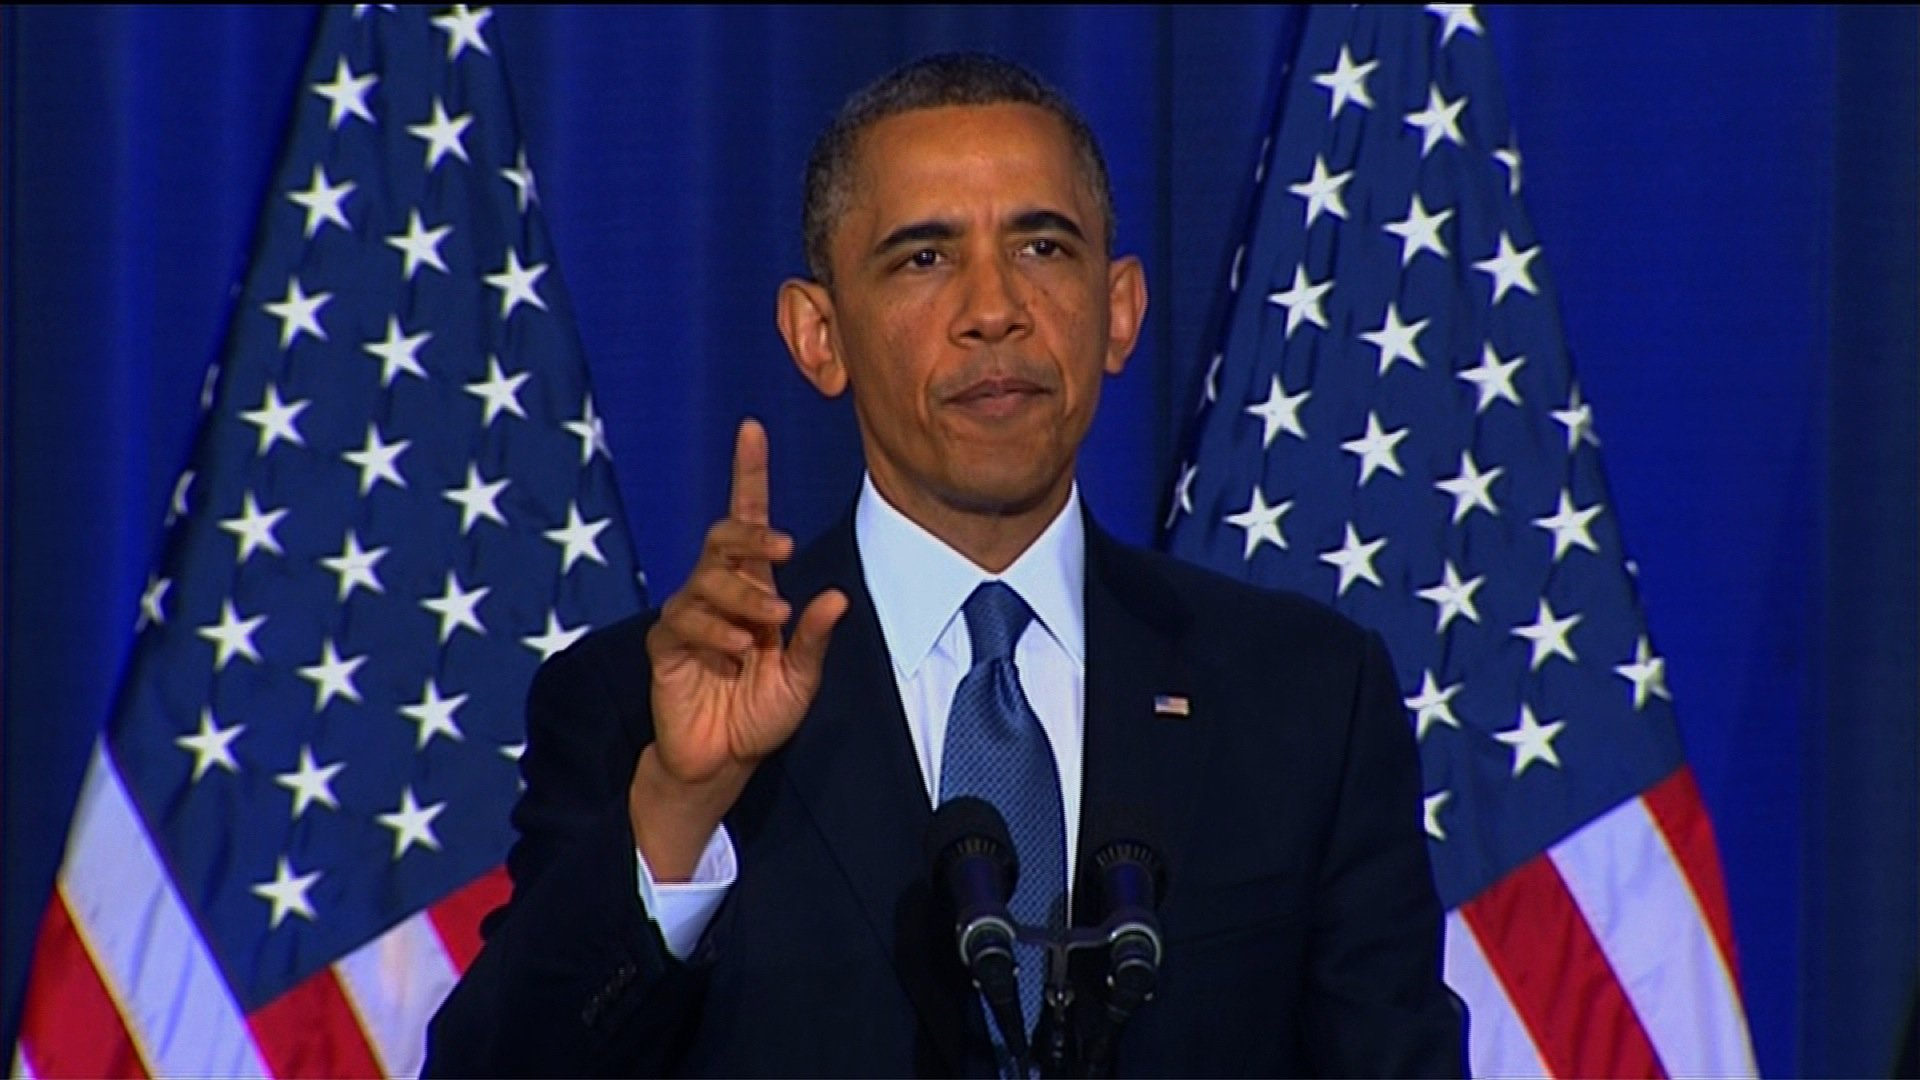 President Obama spoke Thursday on national security issues including drone strikes. (Credit: CNN)